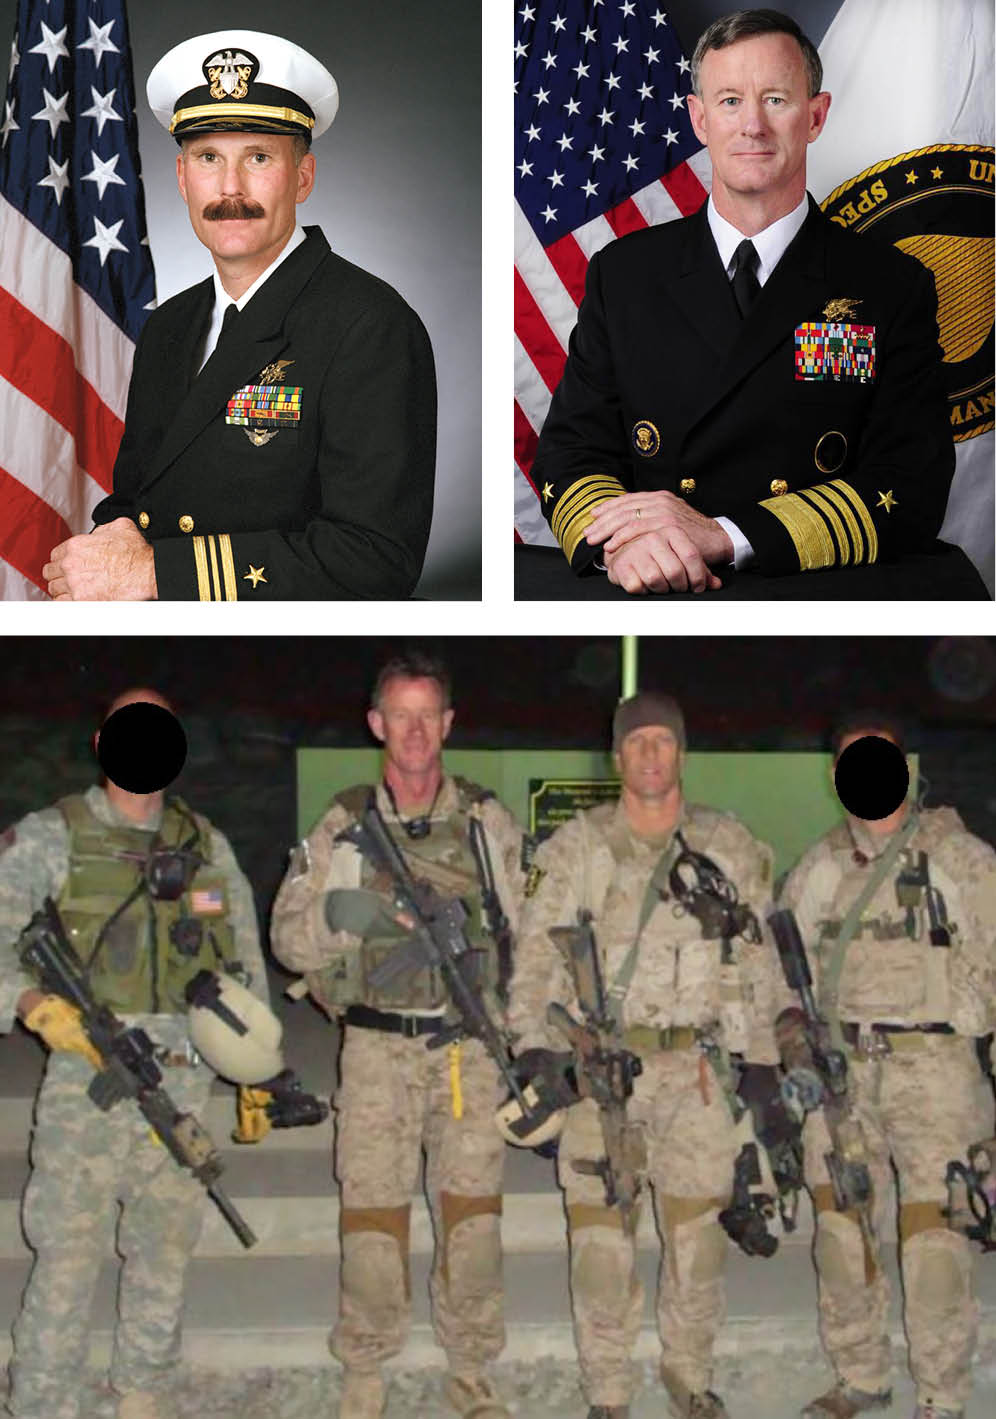 The Crimes of SEAL Team 6 – The Intercept